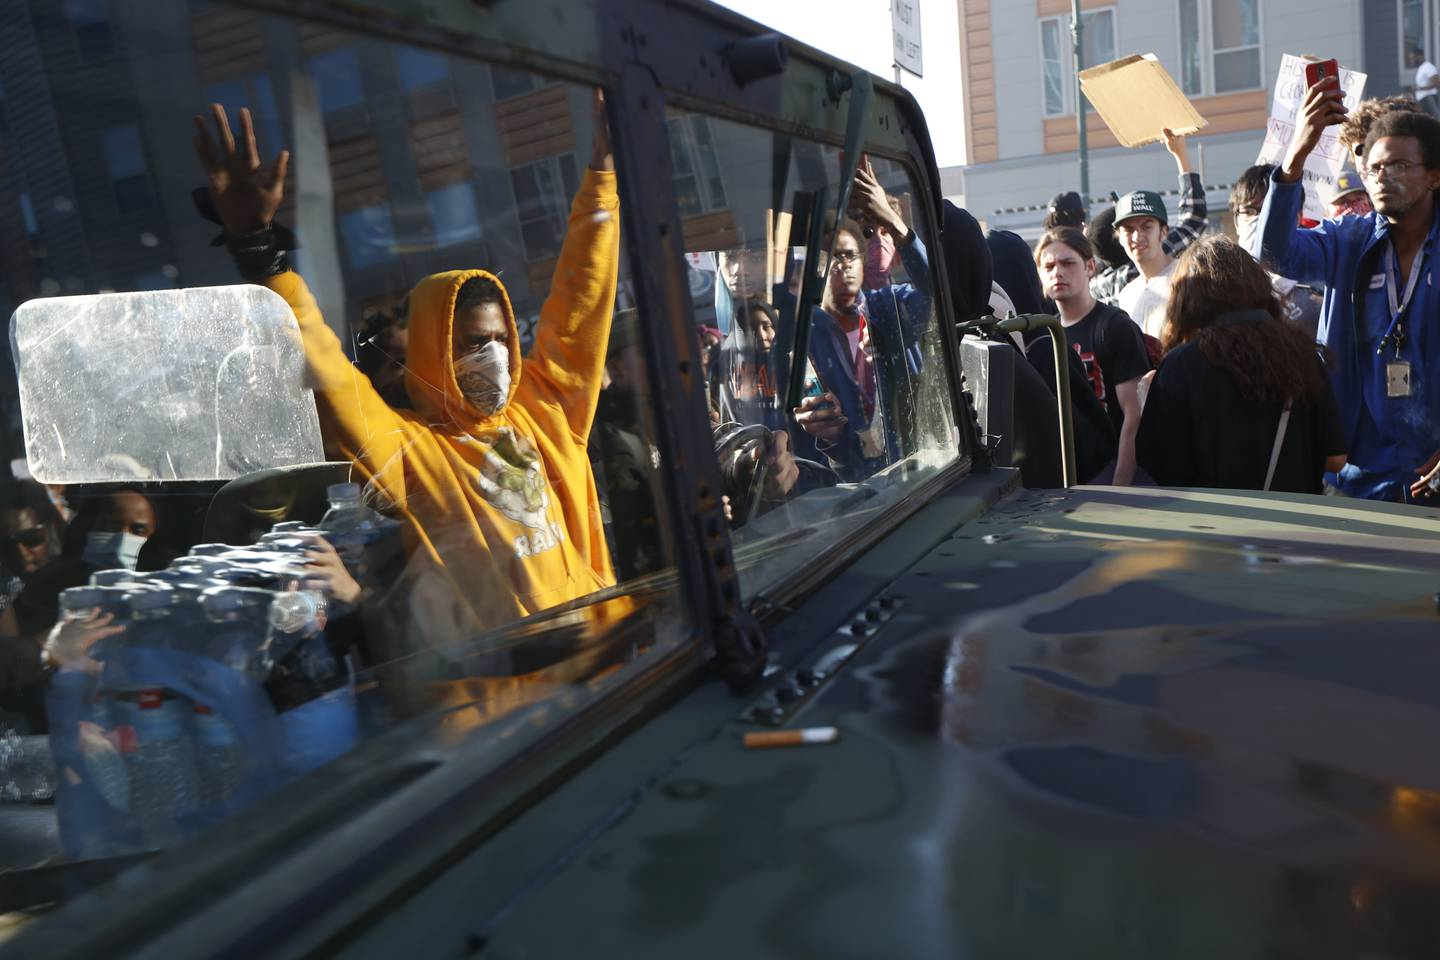 Protesters stand near a Minnesota National Guard vehicle Friday, May 29, 2020, in Minneapolis. Protests continued following the death of George Floyd, who died after being restrained by Minneapolis police officers on Memorial Day.